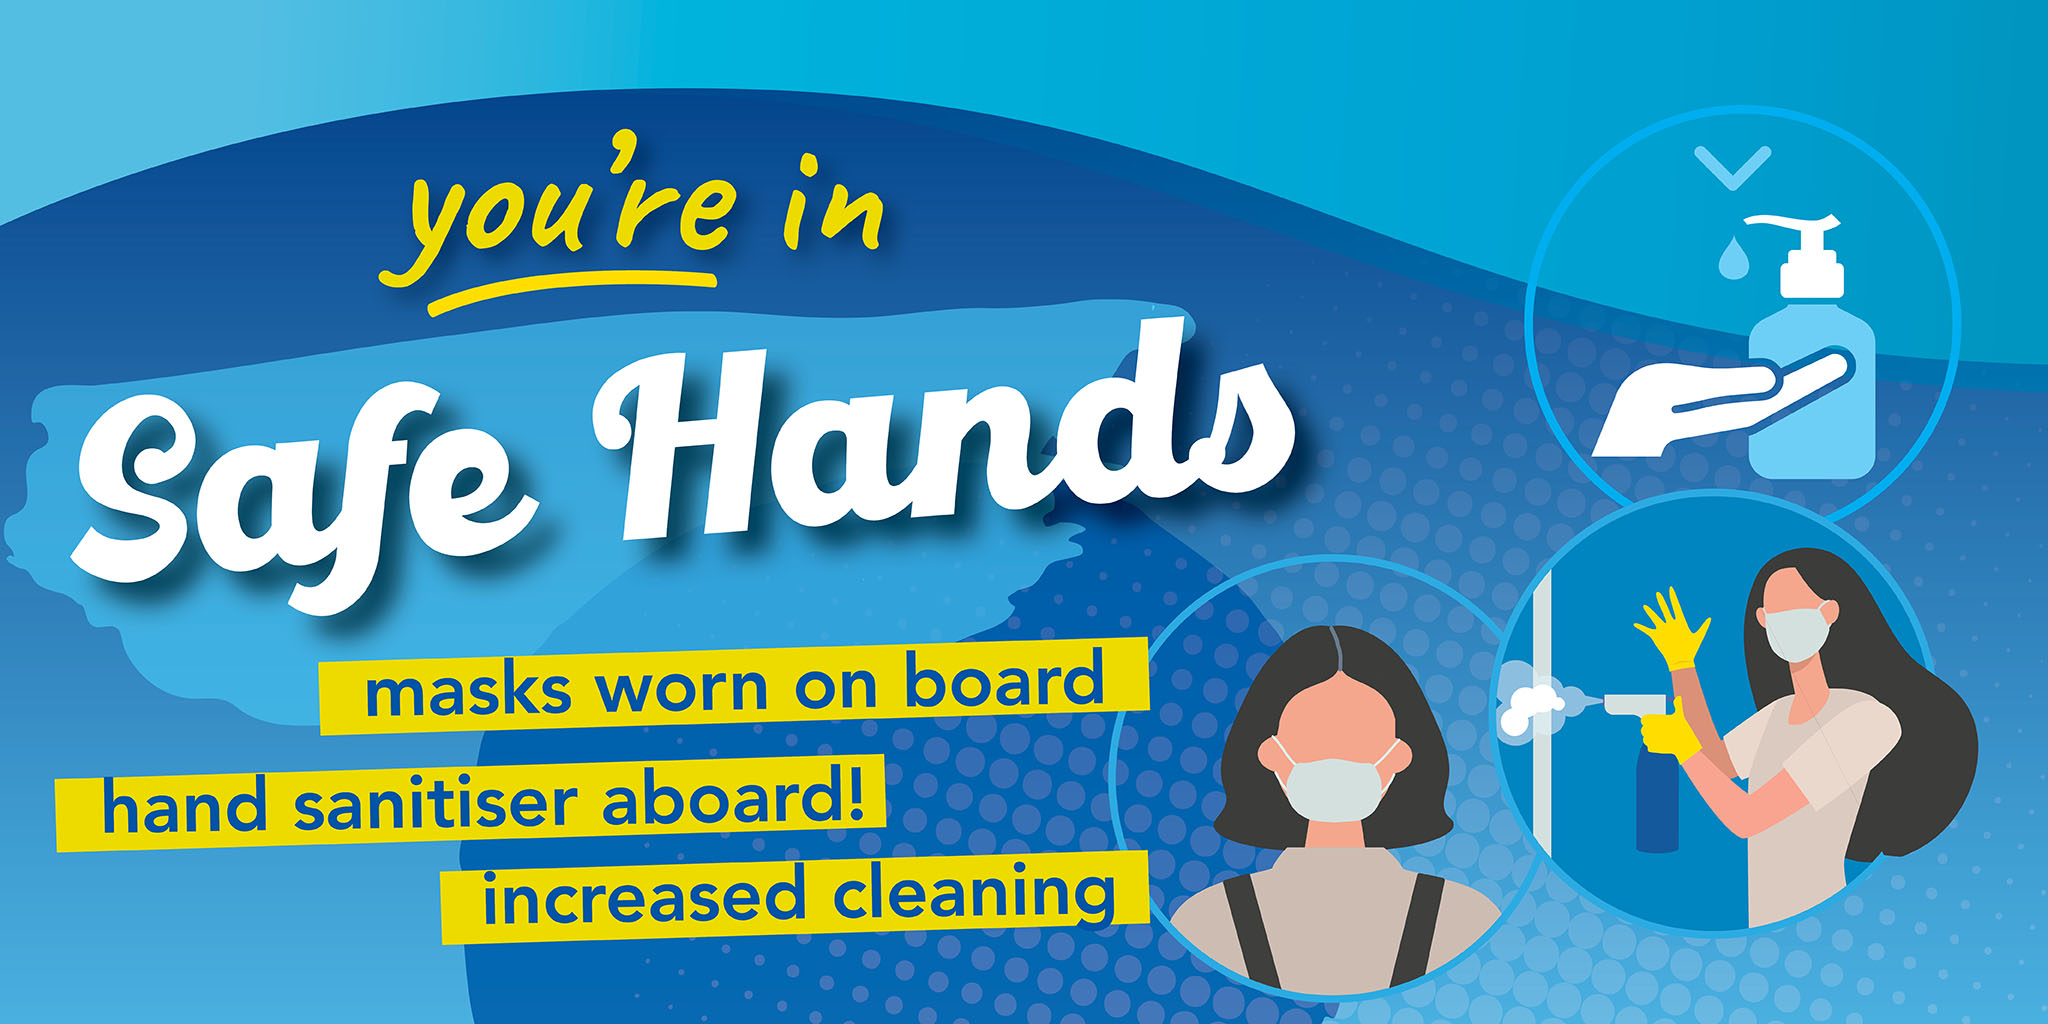 """text """"you're in safe hands, masks worn on board, hand sanitiser aboard!, increased cleaning. and graphics of a mask, hand sanitiser and cleaner"""